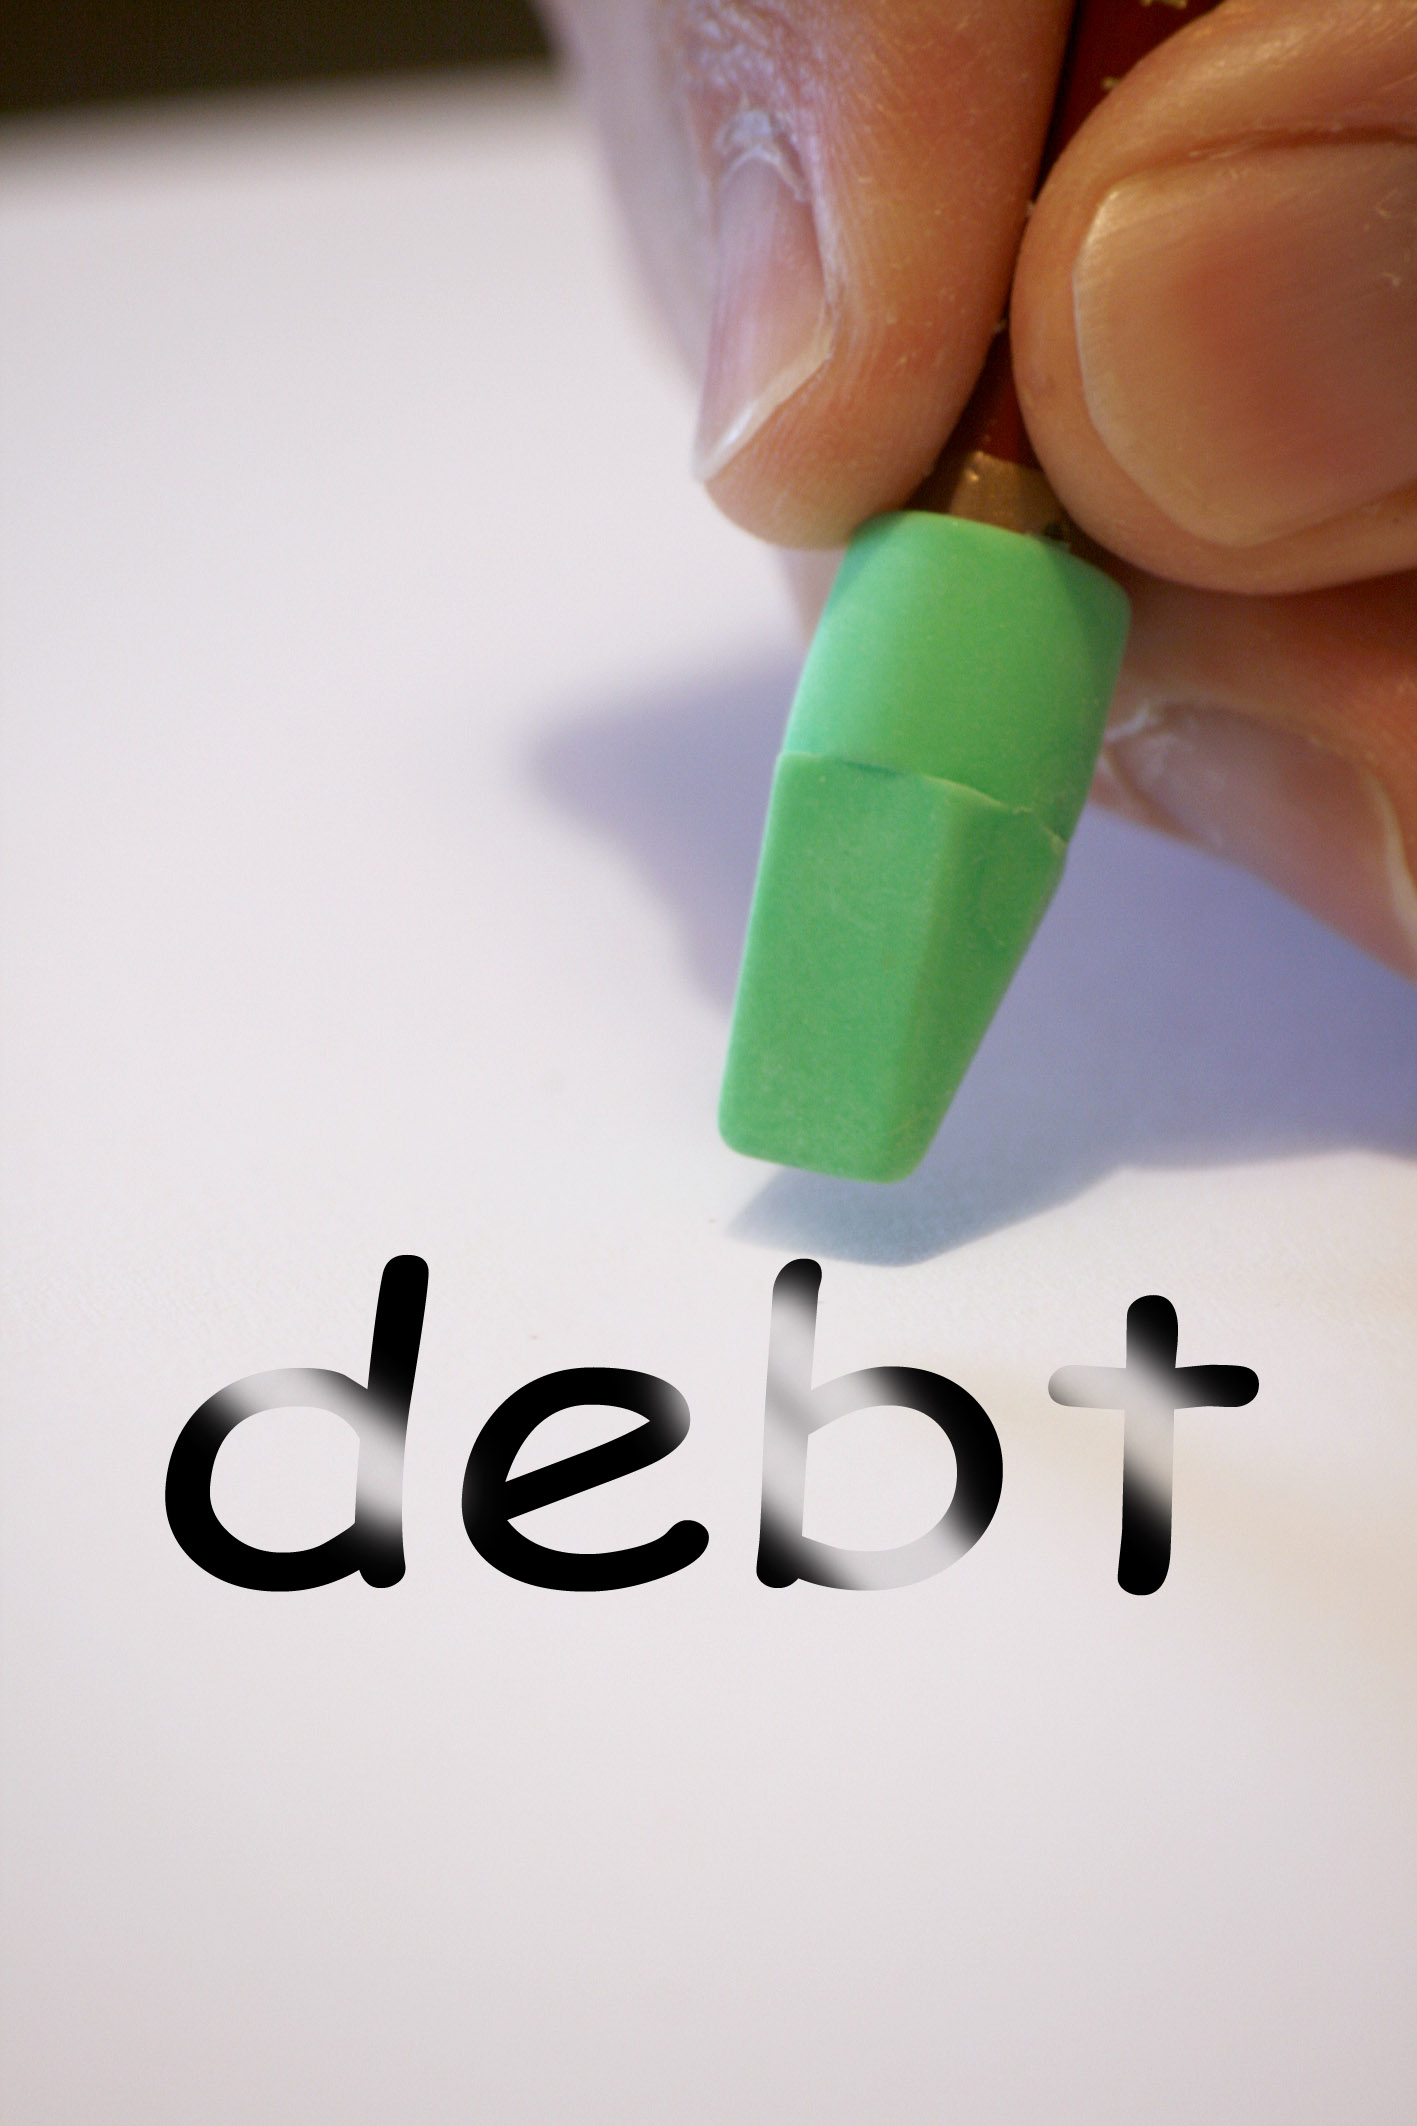 Debts - ebonydirectory.com